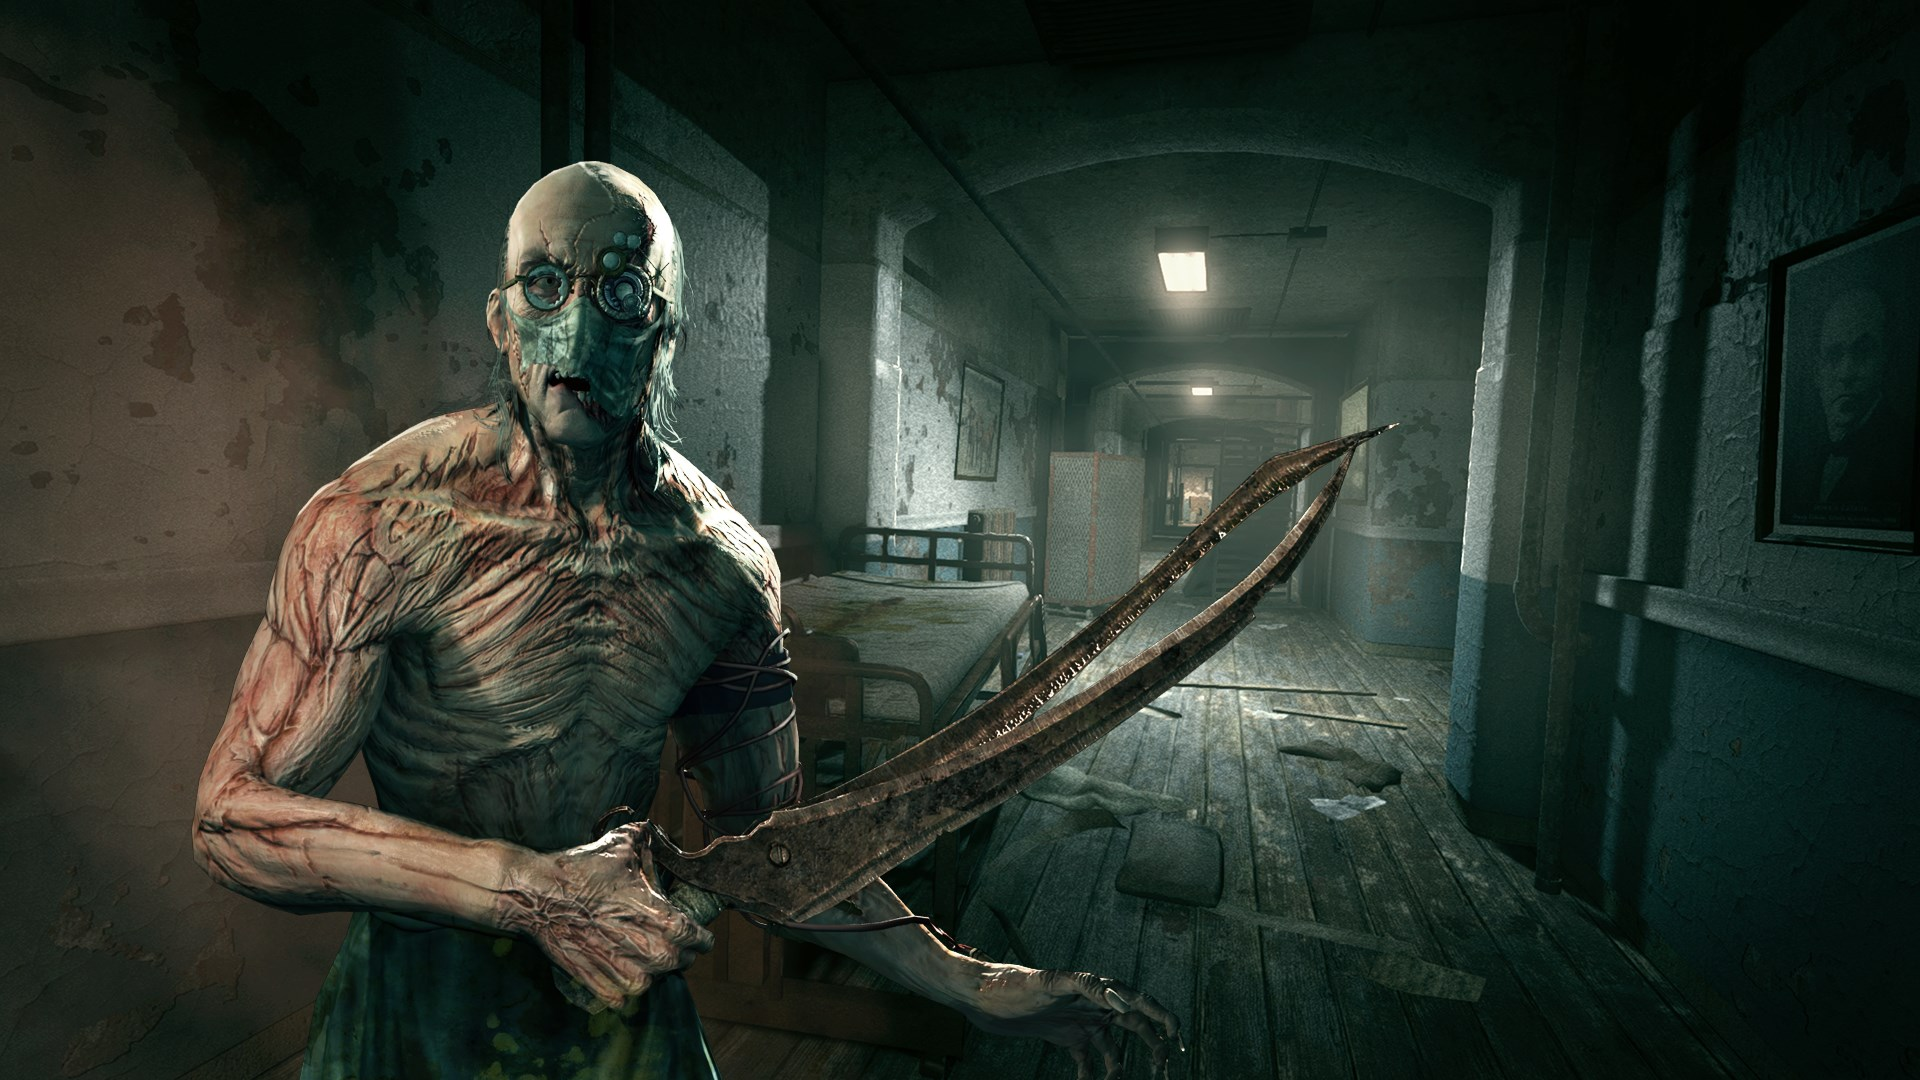 Did you know that Outlast was inspired by the Real-life mental hospital?